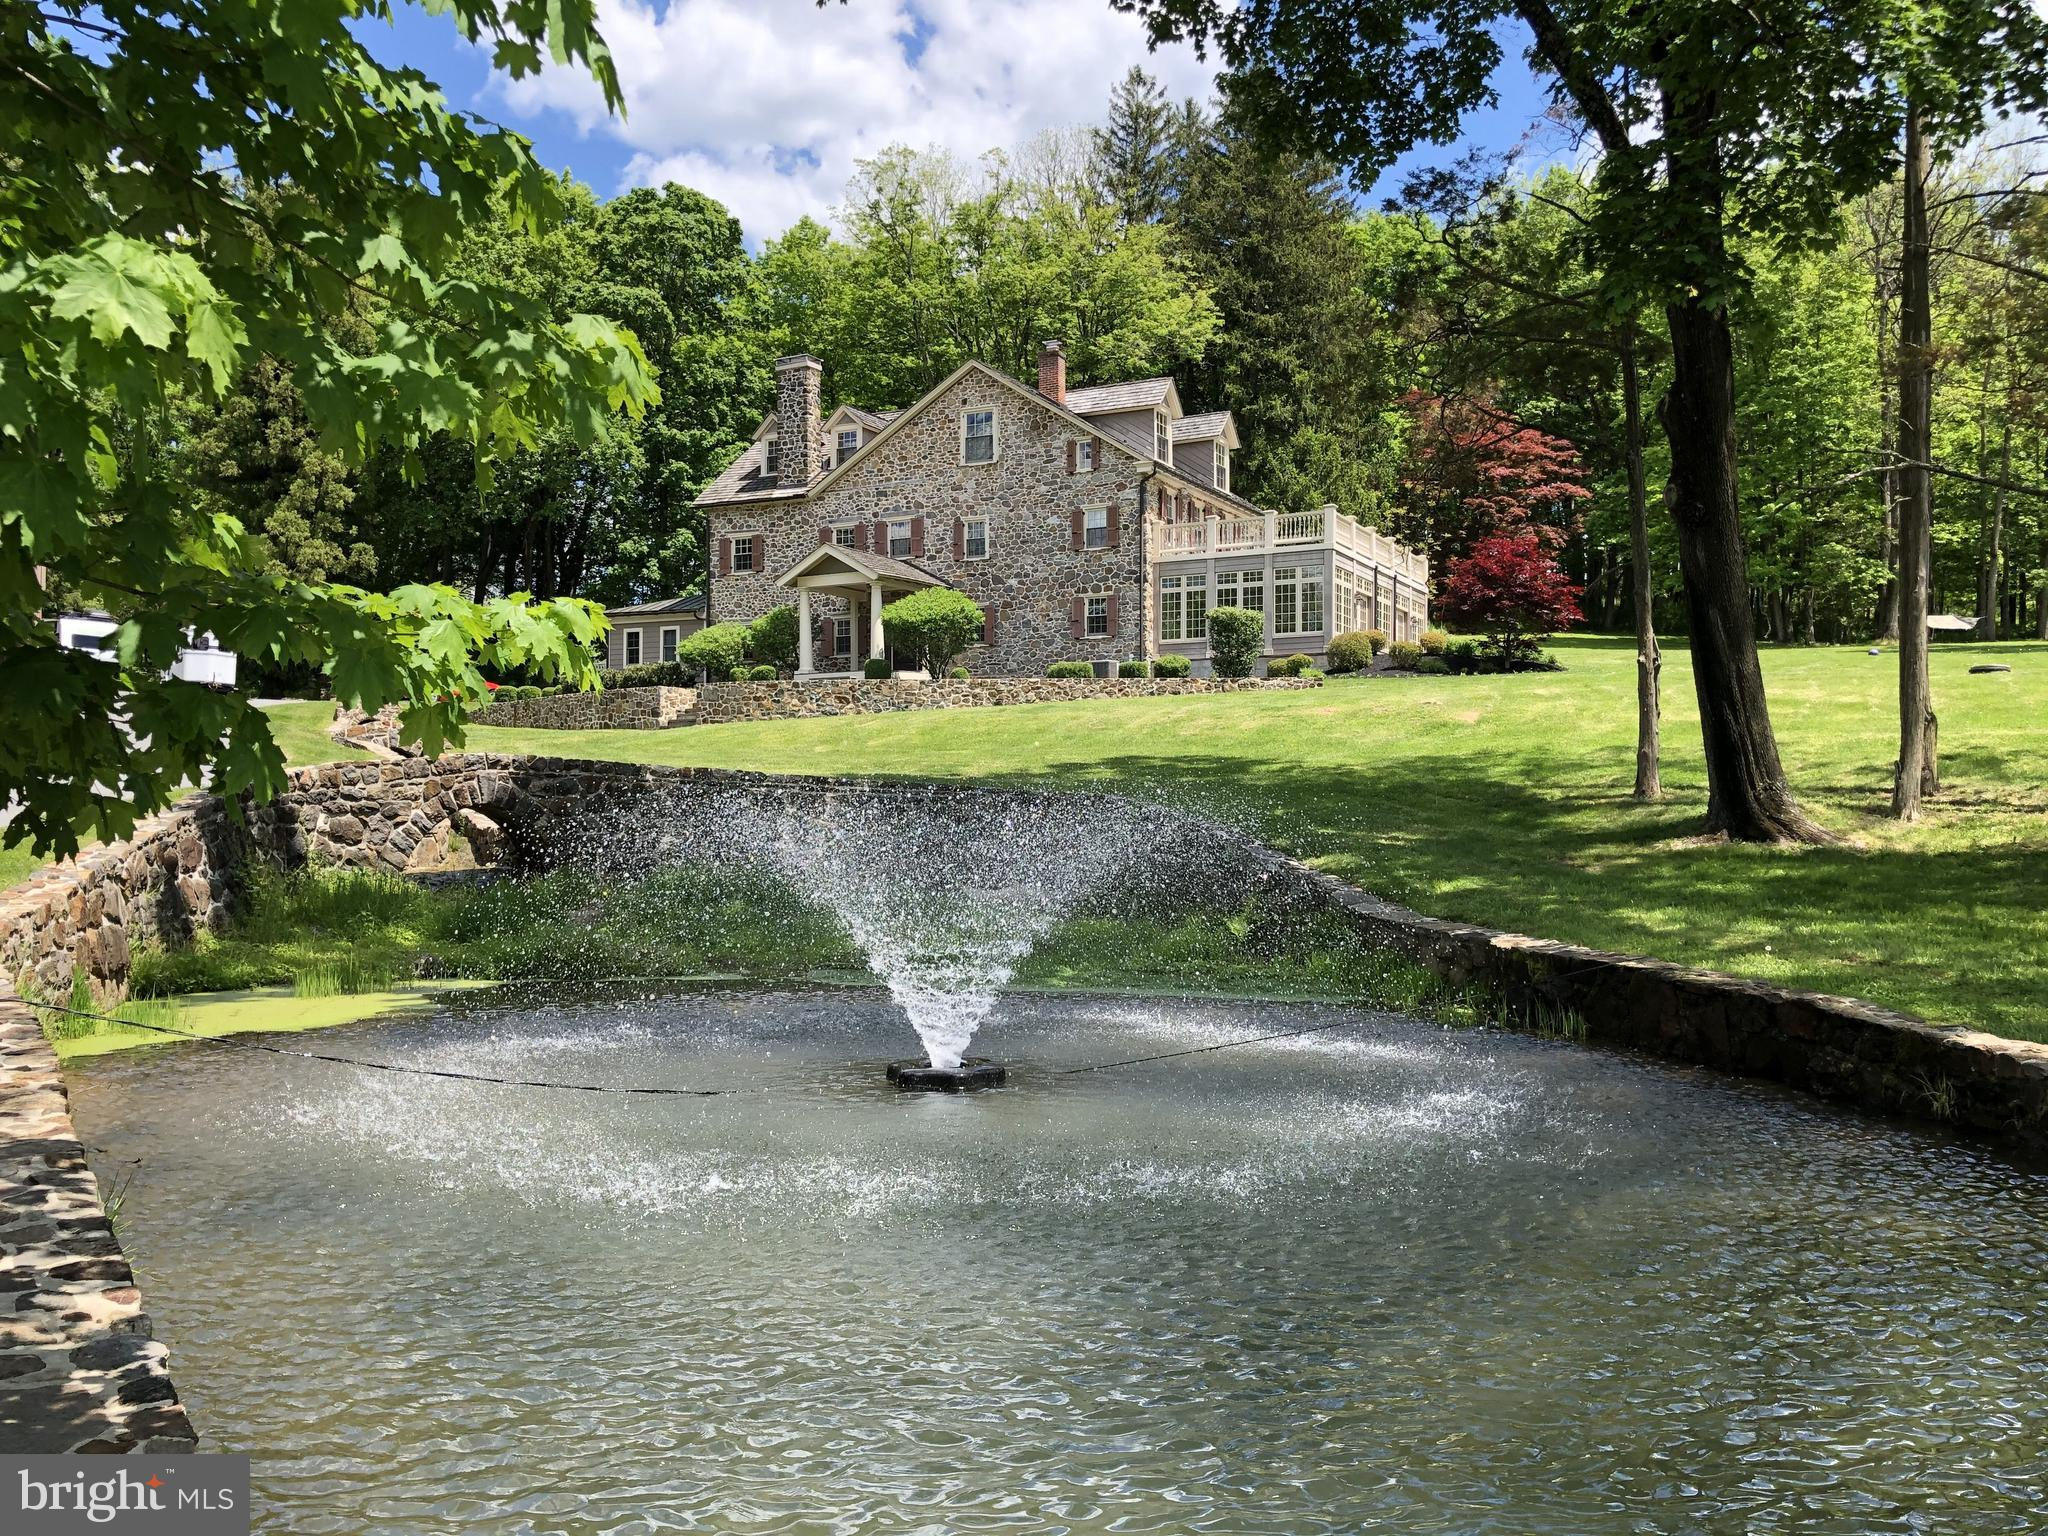 Beautifully restored 5BR field stone manor house sensitively positioned, with the landscape, on 8.5+/- acres.  Lovely stone pillars and walls surrounding the pond as you enter the property.  Small spring fed stream originates from springhouse on the property.  Bank barn, fenced pasture, round pen - stalls and loafing shed.  Property offers views for miles!  Call for Showing.